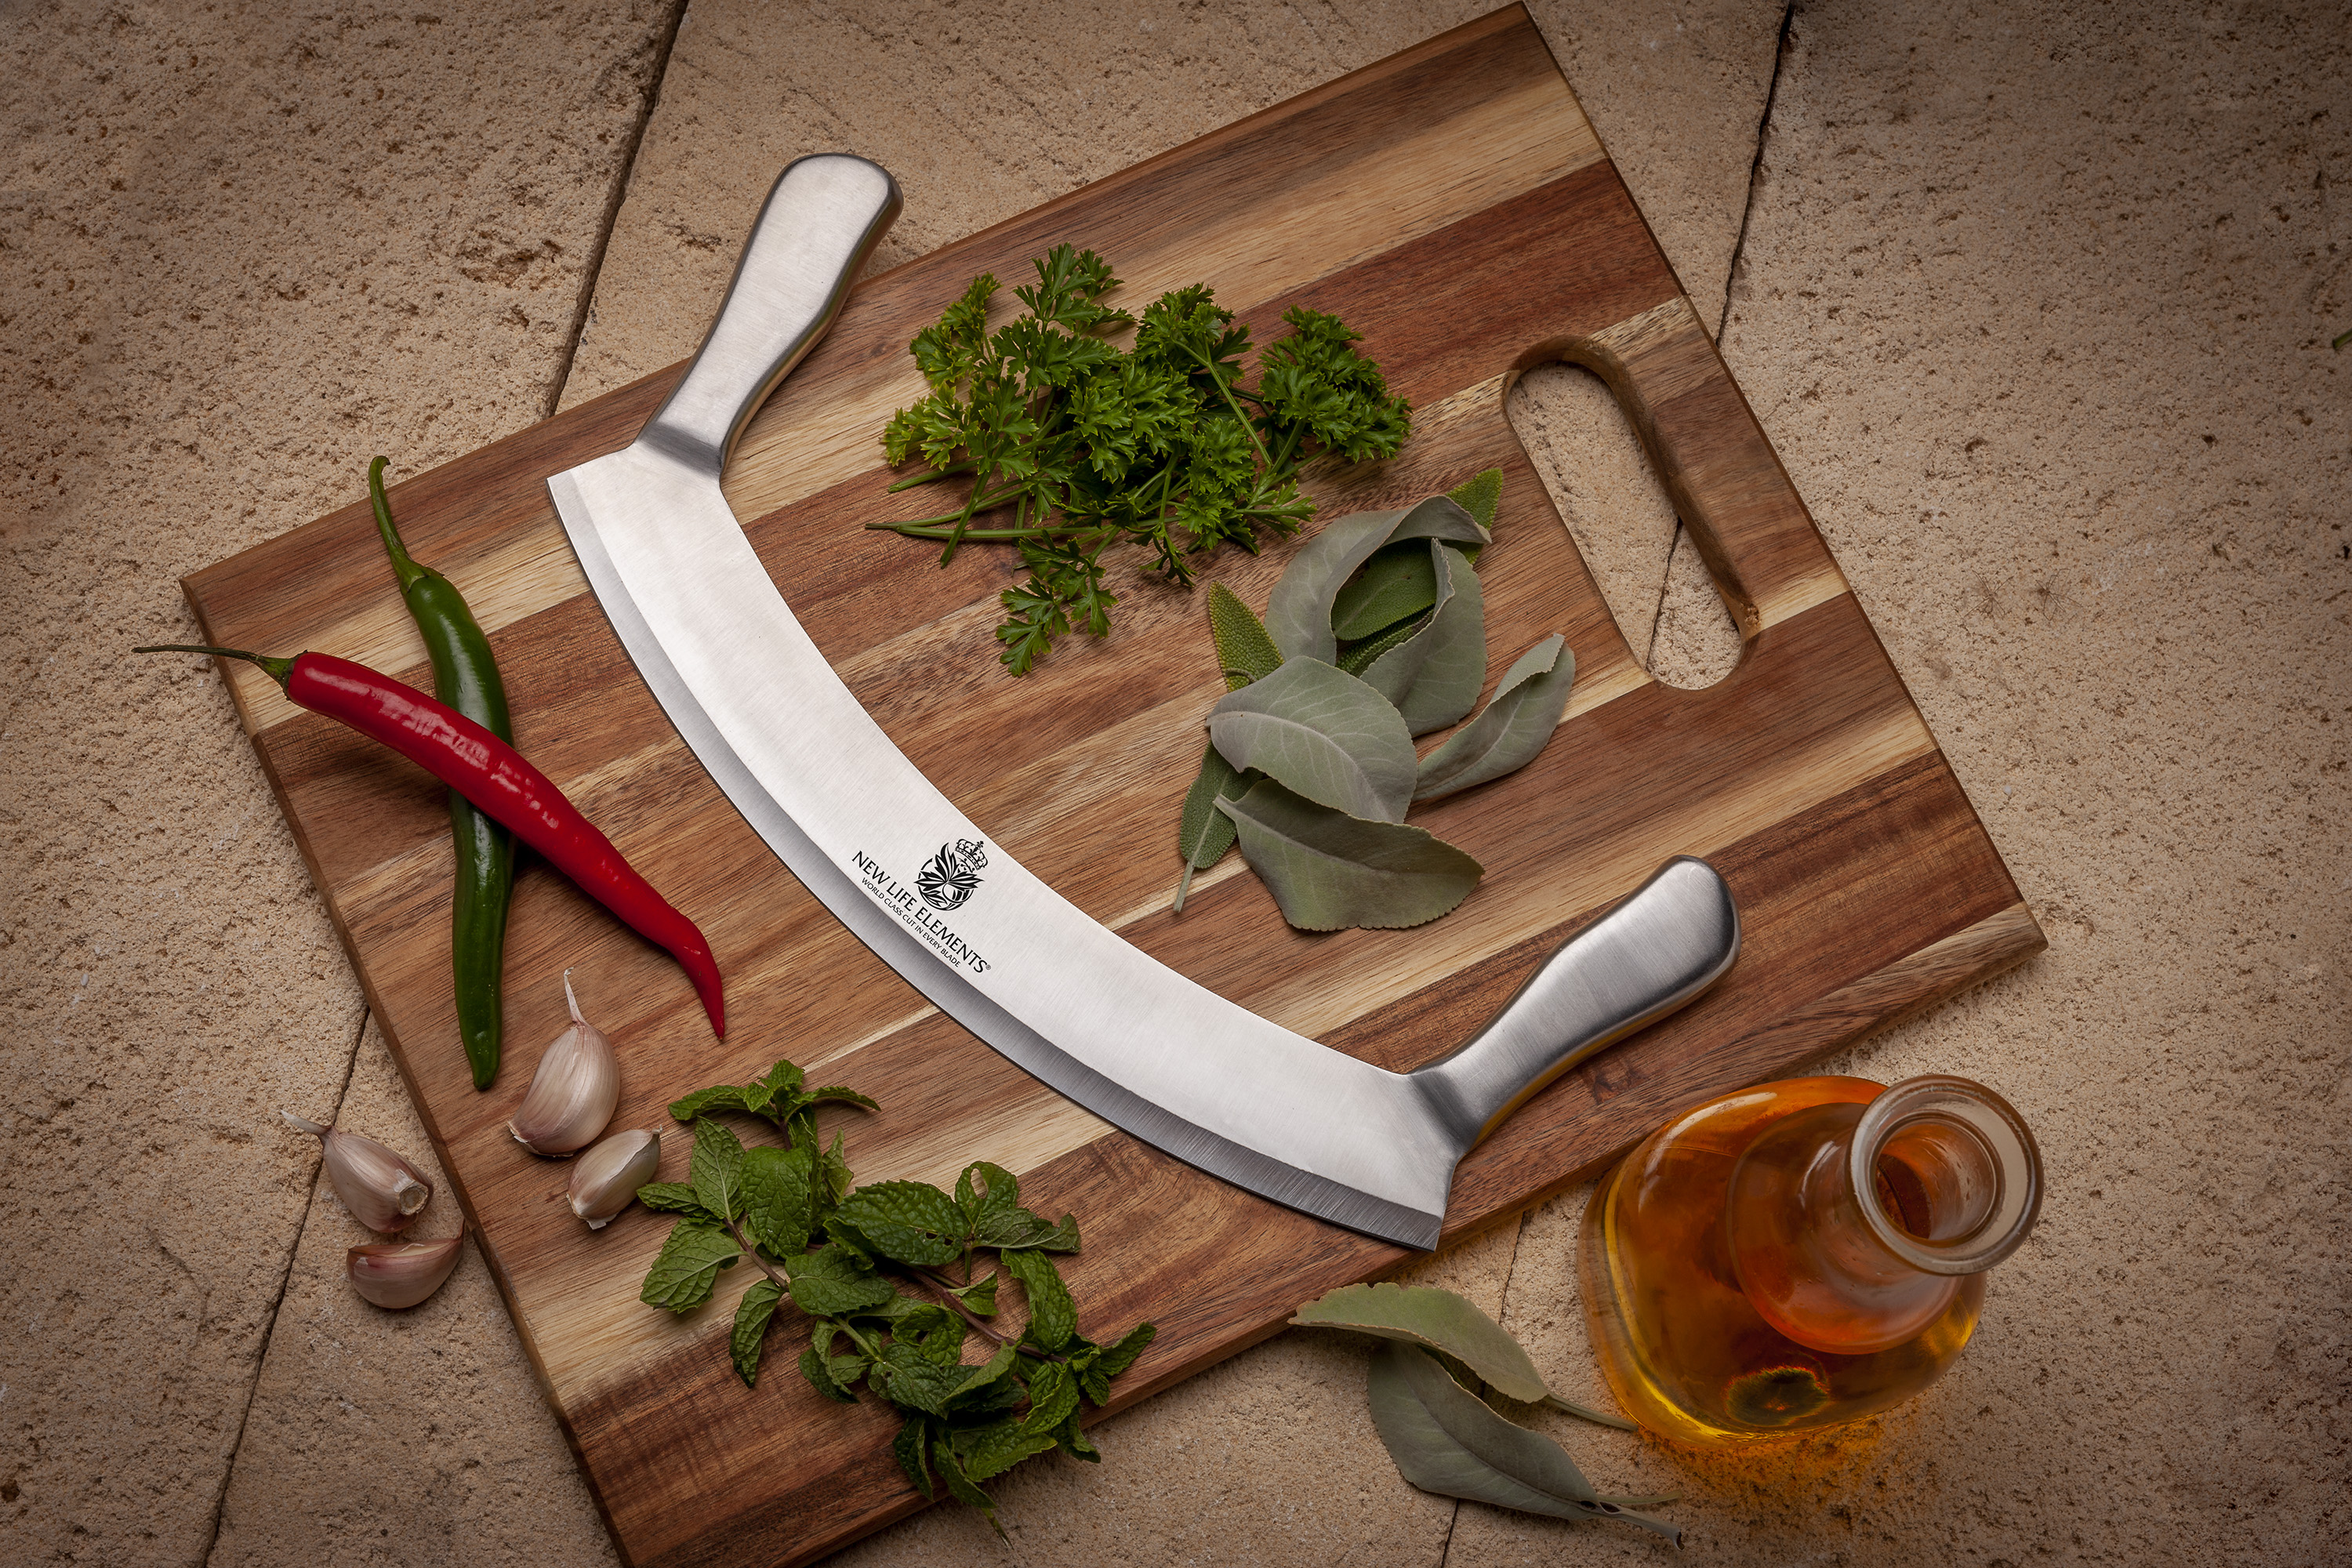 quality pizza cutter, huge pizza cutter,knife pizza cutter ,pizza cutter good cook ,silver pizza cutter kitchenaid pizza, checkered chef pizza pizza cutter, rockin pizza cutter, pizza cutter, Arazona pizza cutter, California pizza cutter, non stick pizza cutter, Ohio pizza cutter, new york rocker pizza cutter, bialetti pizza chopper pizza cutter , easy to clean pizza cutter easy to use pizza cutter, ergonomic pizza cutter, lightweight pizza cutter, pizza cutter with safety, bullet pizza cutter, marvelous pizza cutter ,engravable pizza cutter Rockler pizza cutter kitchenaid pizza cutter, pizza cutter for picnic ,cutter carbon steel pizza cutter, restaurant pizza cutter,professional pizza cutter, pizza cutter indoor, non scratch pizza cutter , steel pizza cutter pizza cutter commercial, pizza cutter outdoor, pizza cutter 12 inch stainless steel, sharp pizza cutter